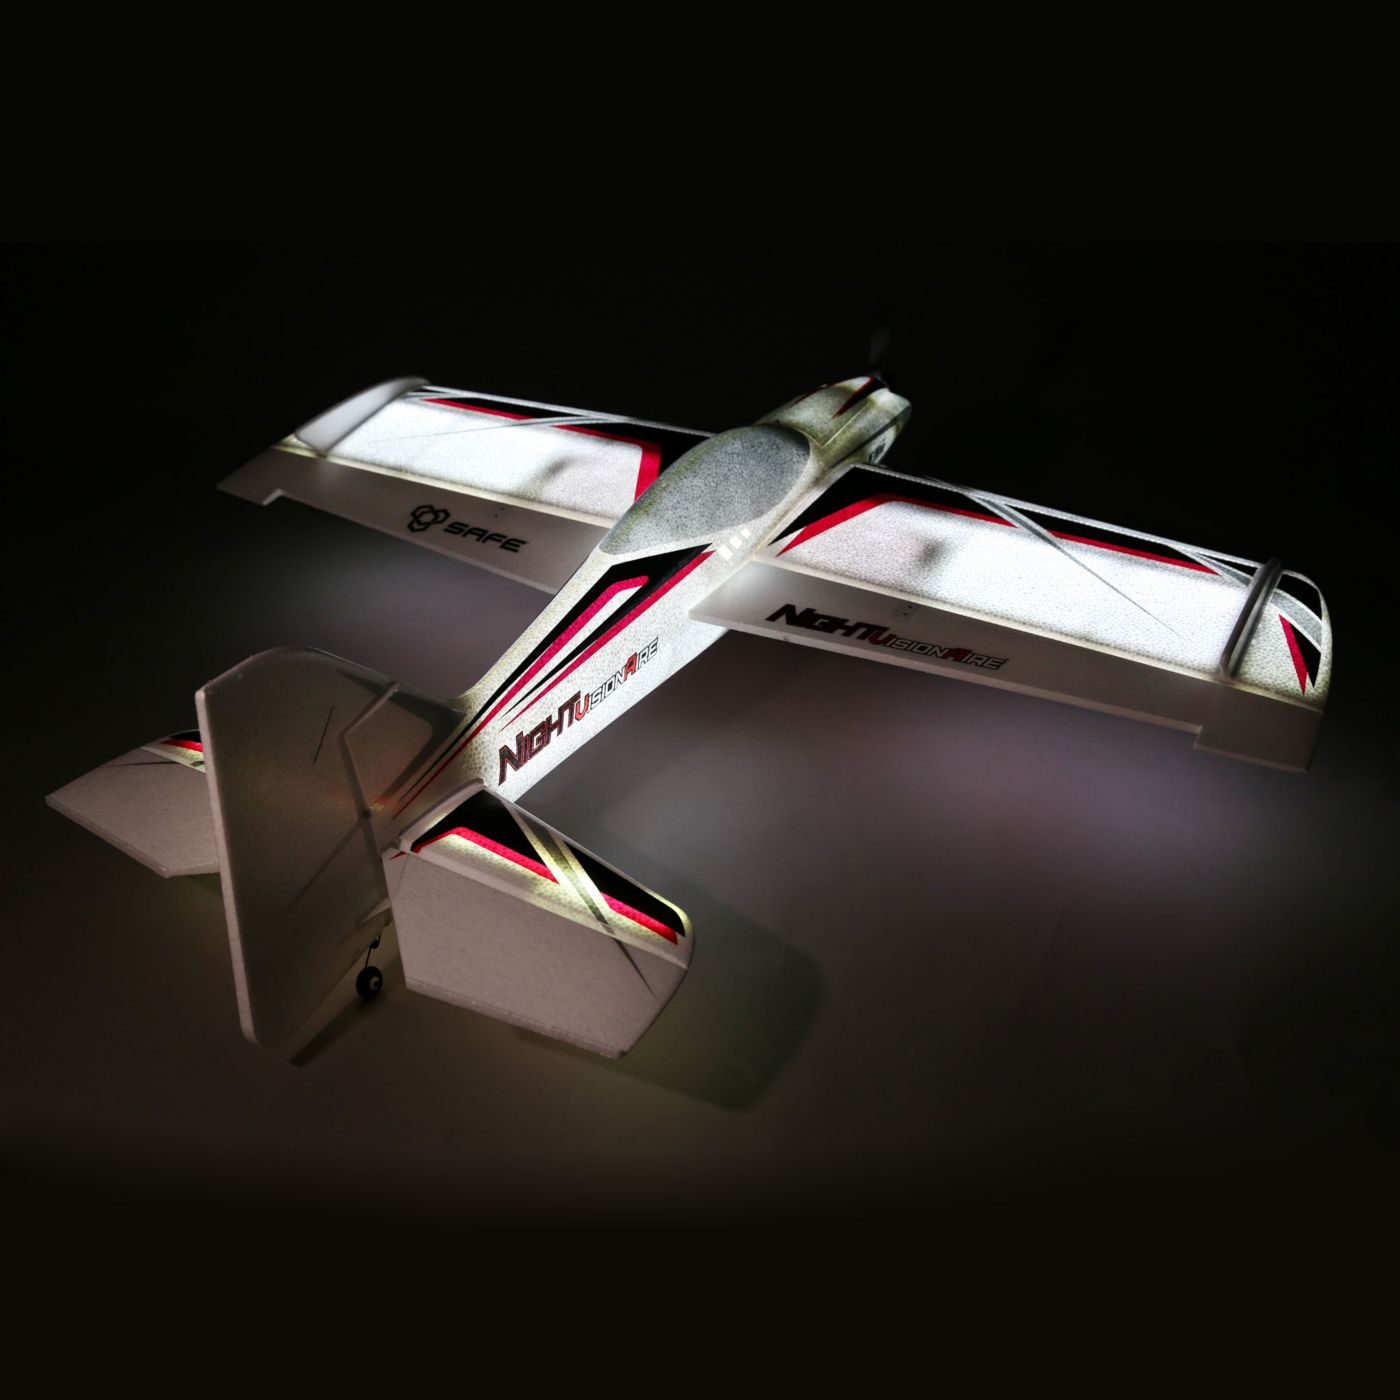 Night VisionAire E-flite